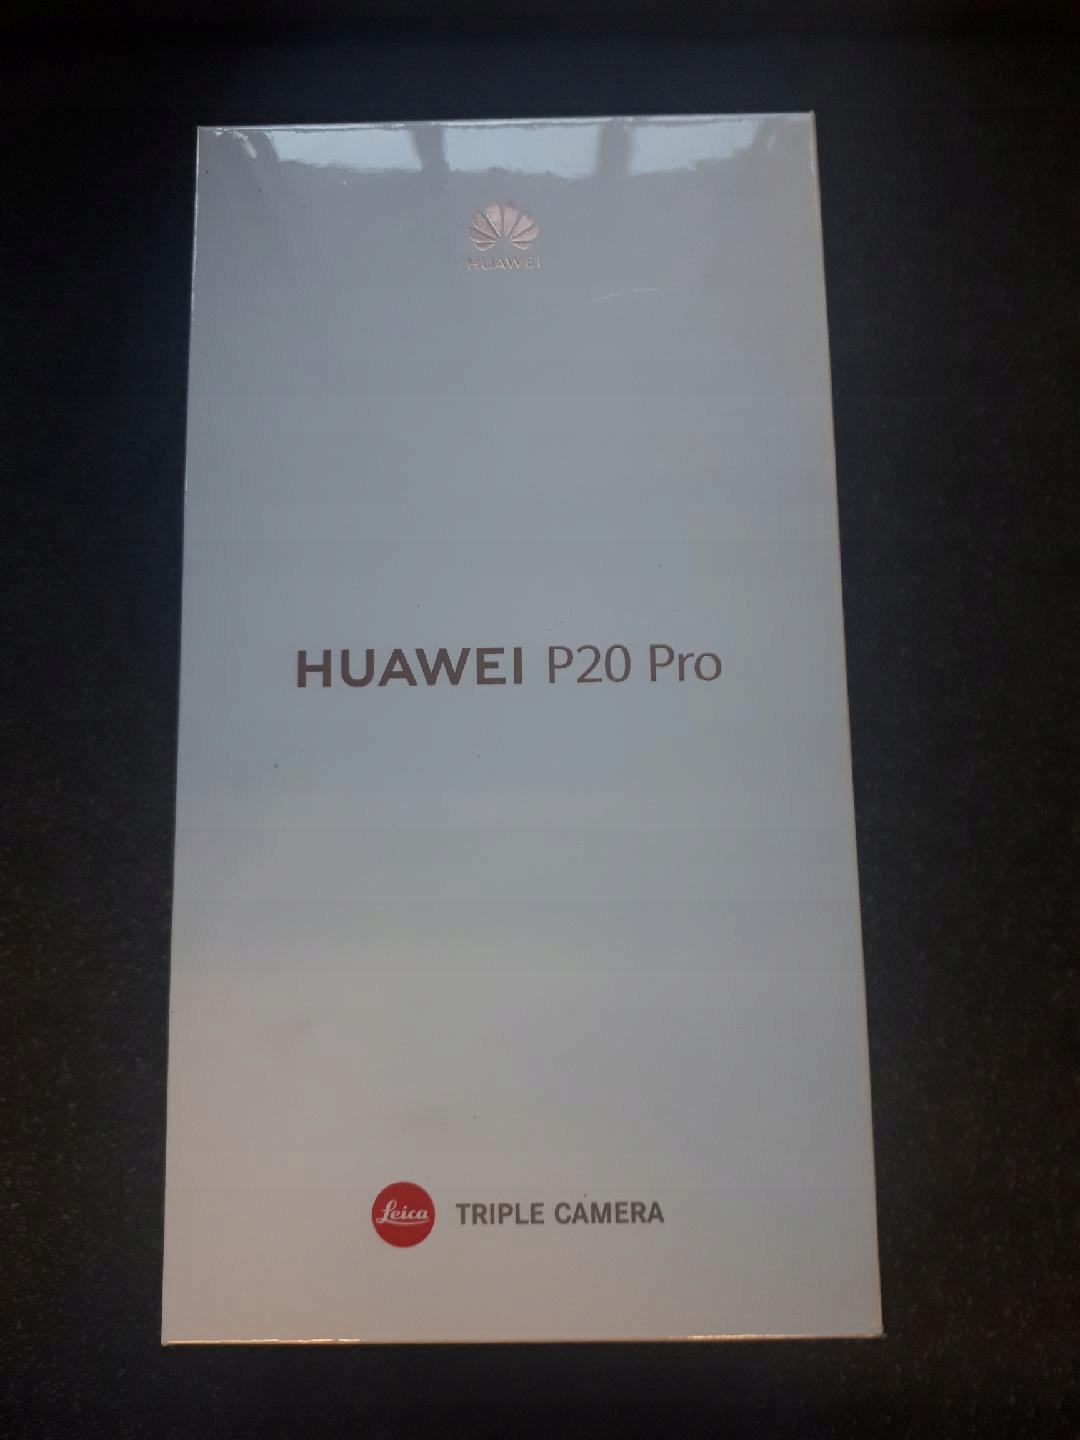 HUAWEI P20 PRO FIOLETOWY